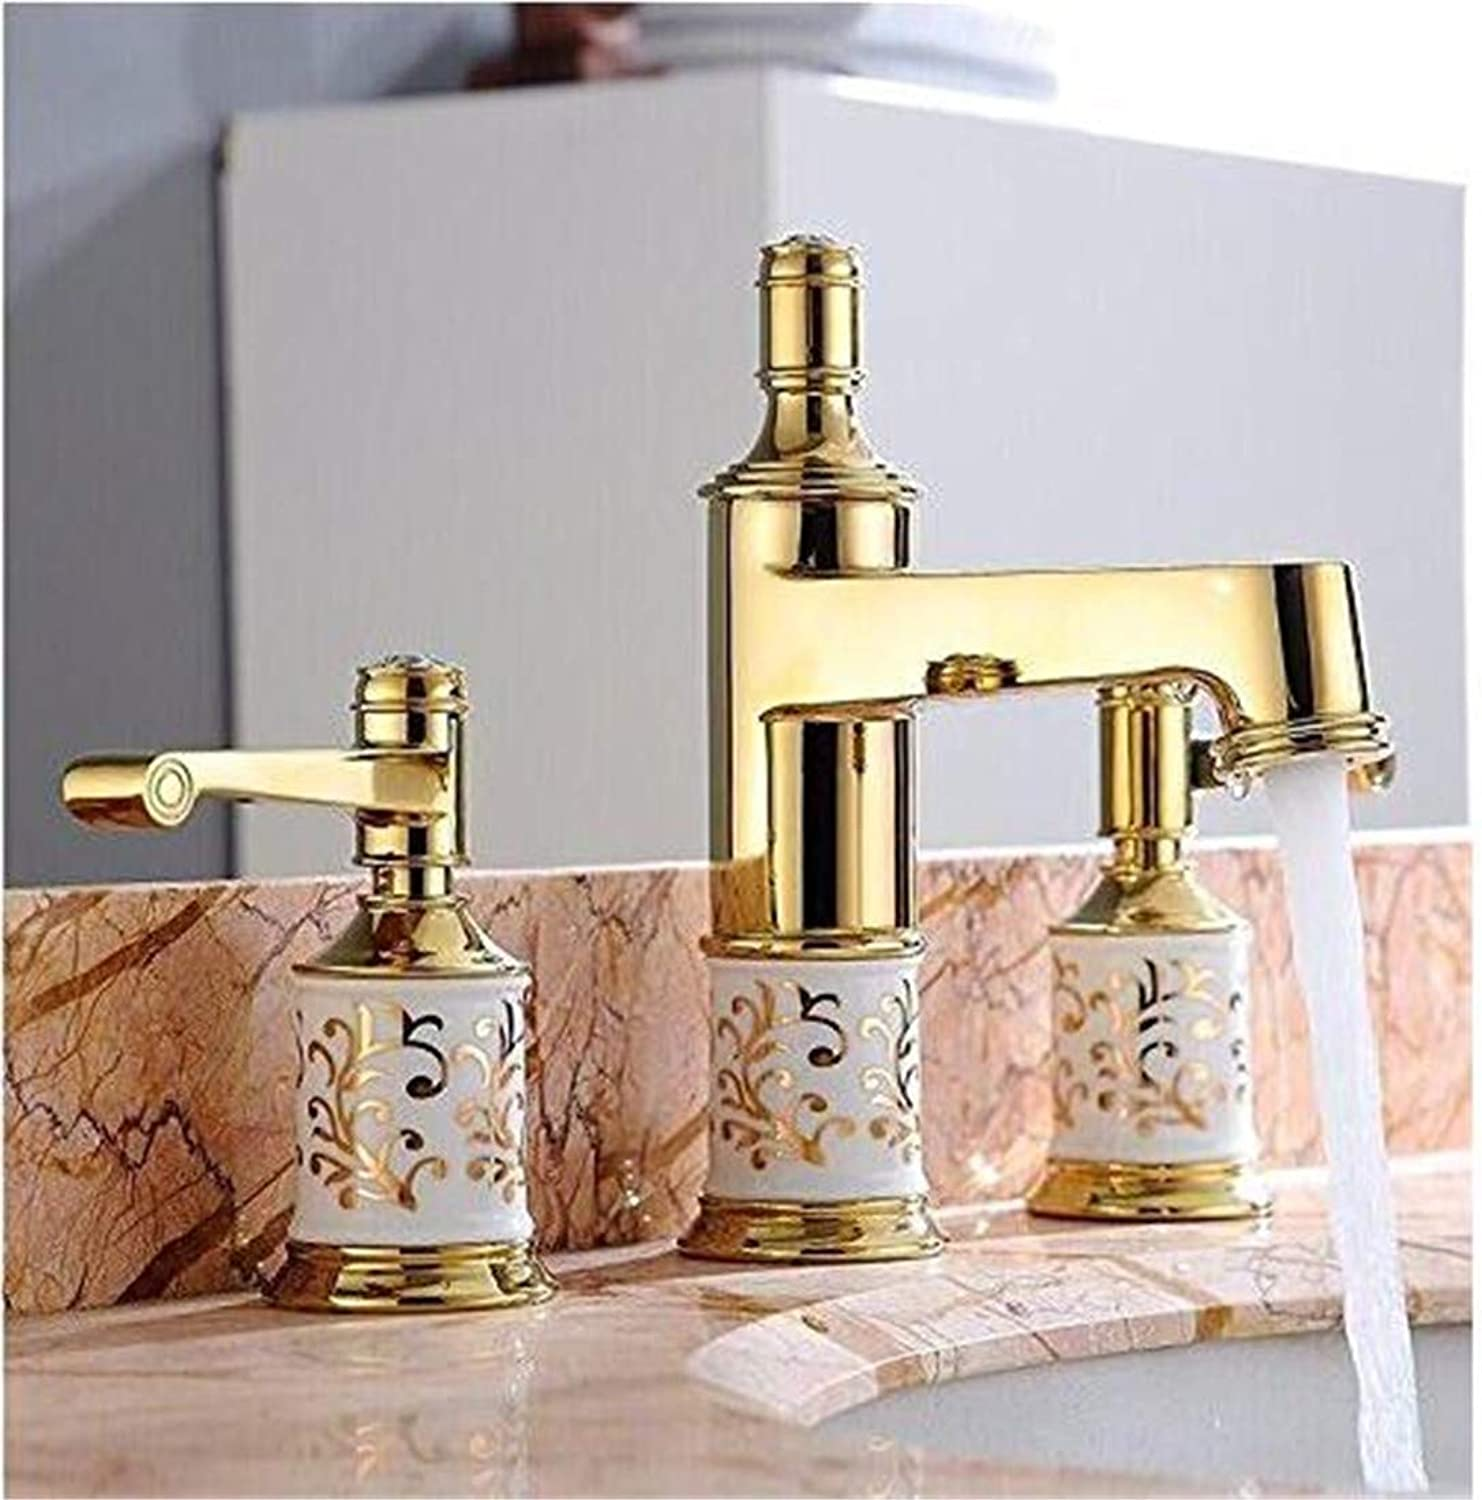 Chrome Kitchen Sink Tapbathroom Faucet 3 Holes Double Handle pink golden Basin Sink Water Taps Solid Brass in The Bathroom Products